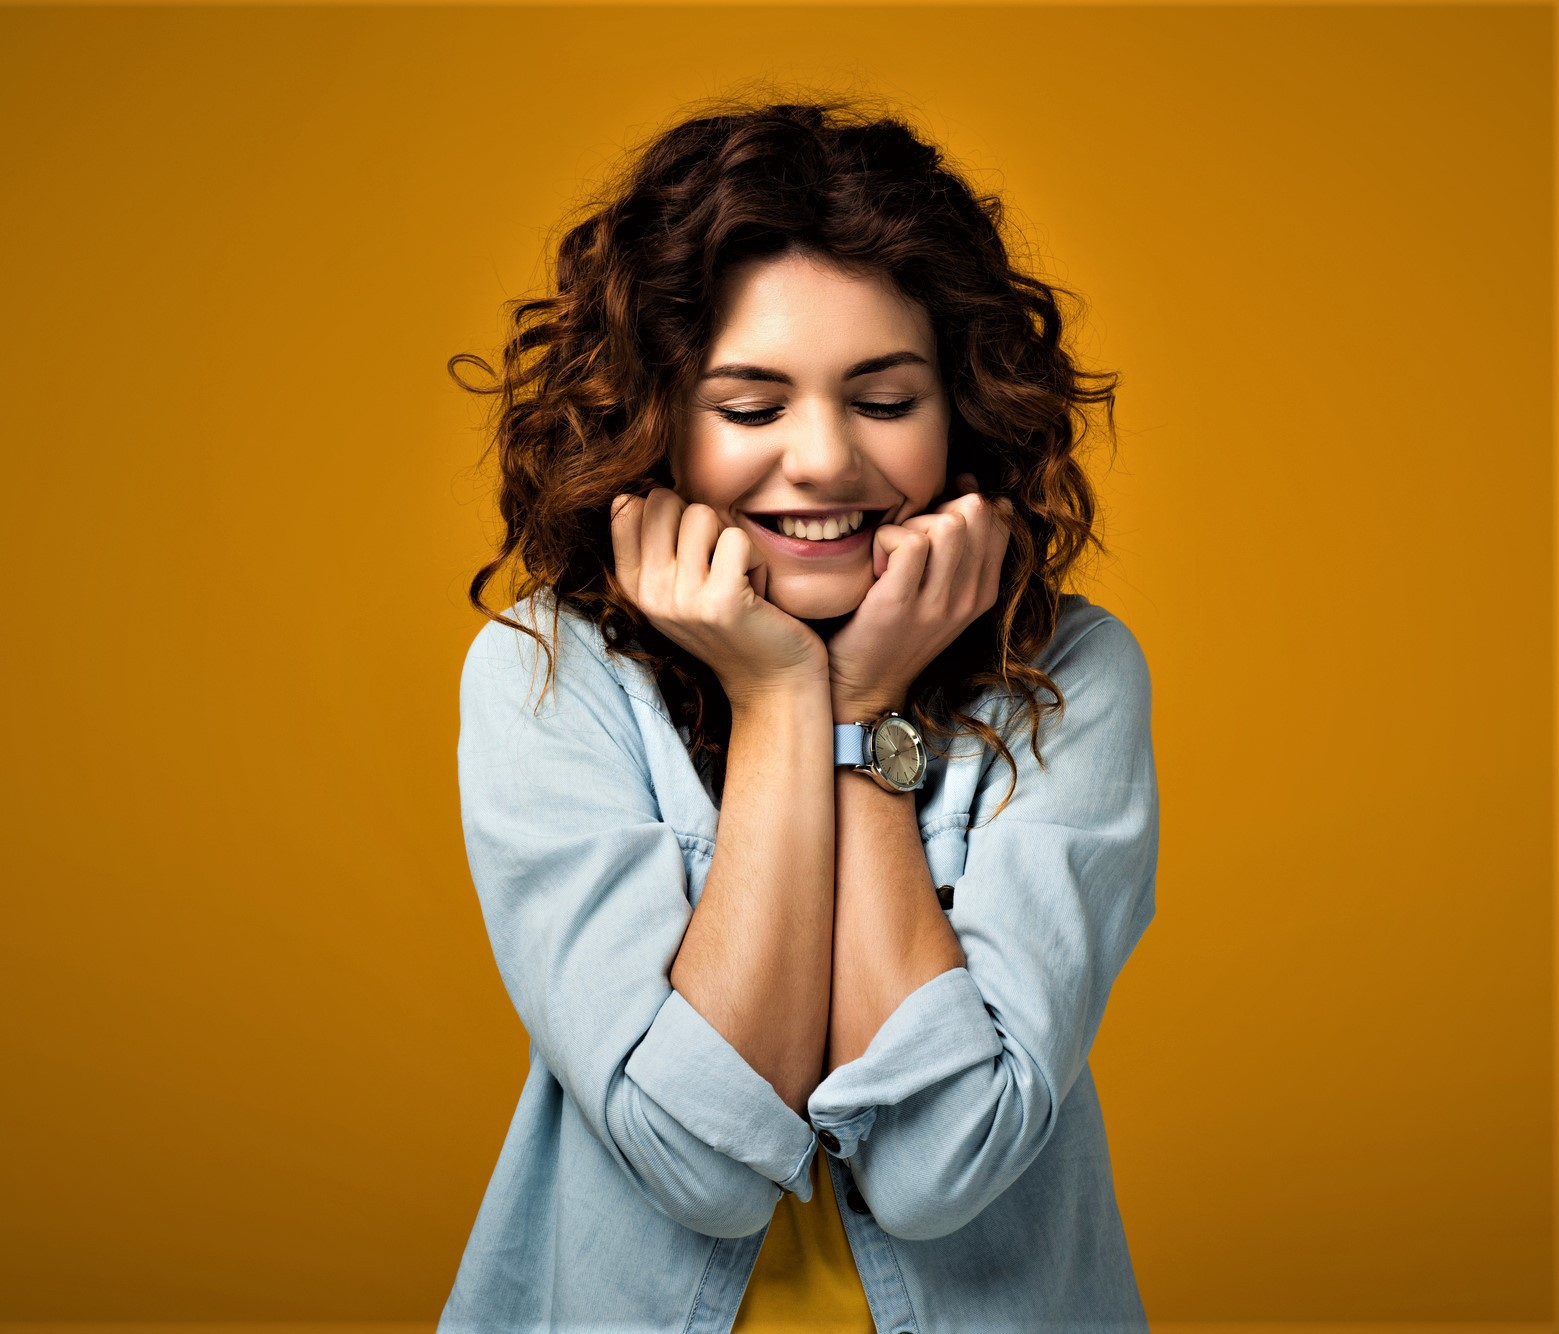 smiling girl with curly brown hair wearing long sleeve light blue shirt holding hands to her face with eyes closed